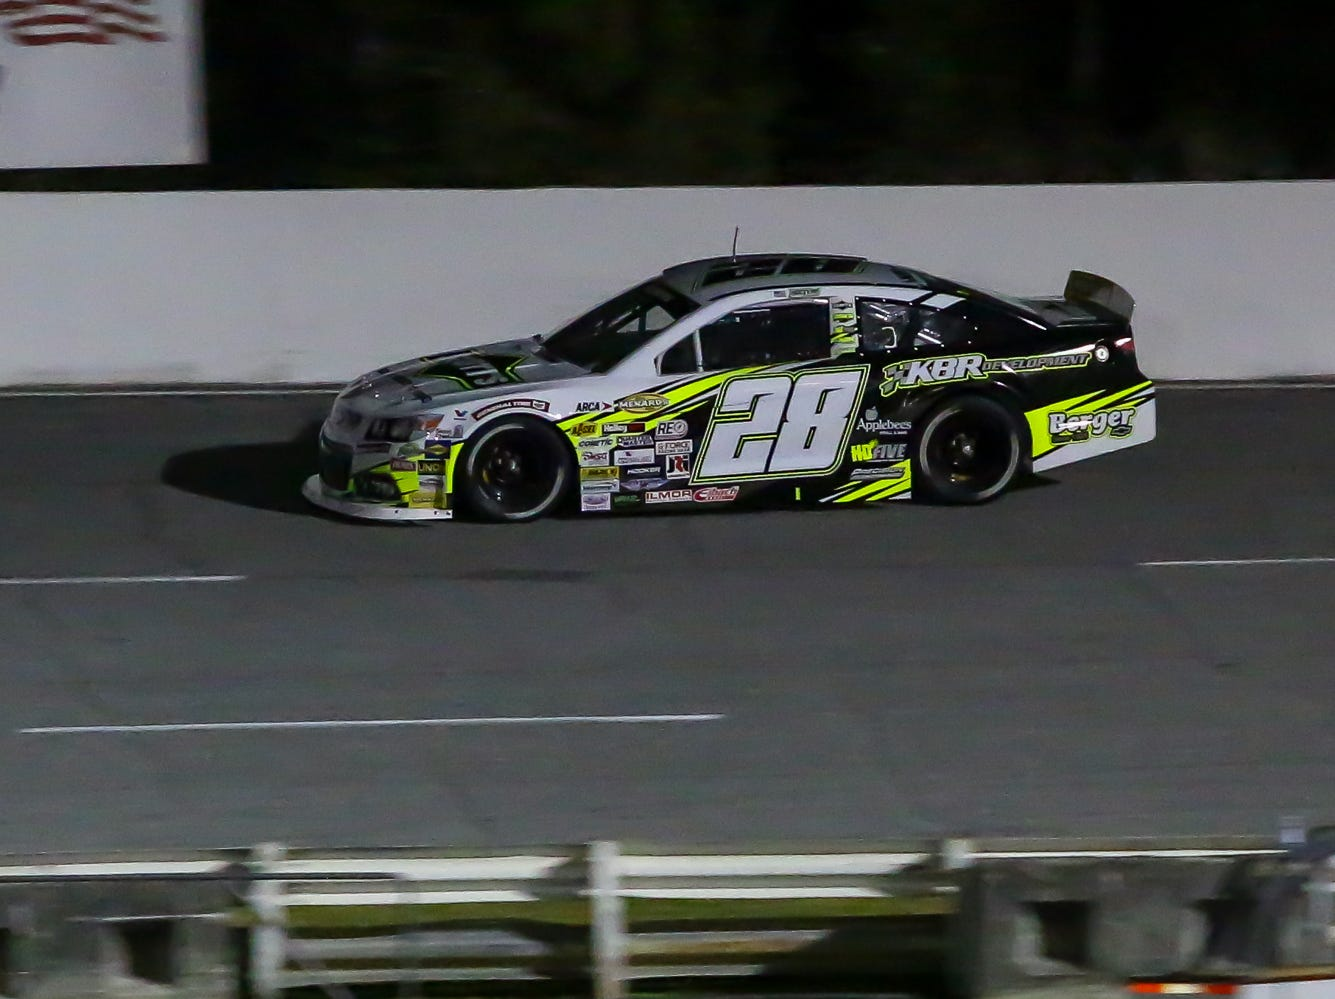 Caron Hocevar (28) makes his way around the track during the ARCA Pensacola 200 race presented by Inspectra Thermal Solutions on Saturday, March 9, 2019, at Five Flags Speedway. Michael Self, of Salt Lake City, won the race.